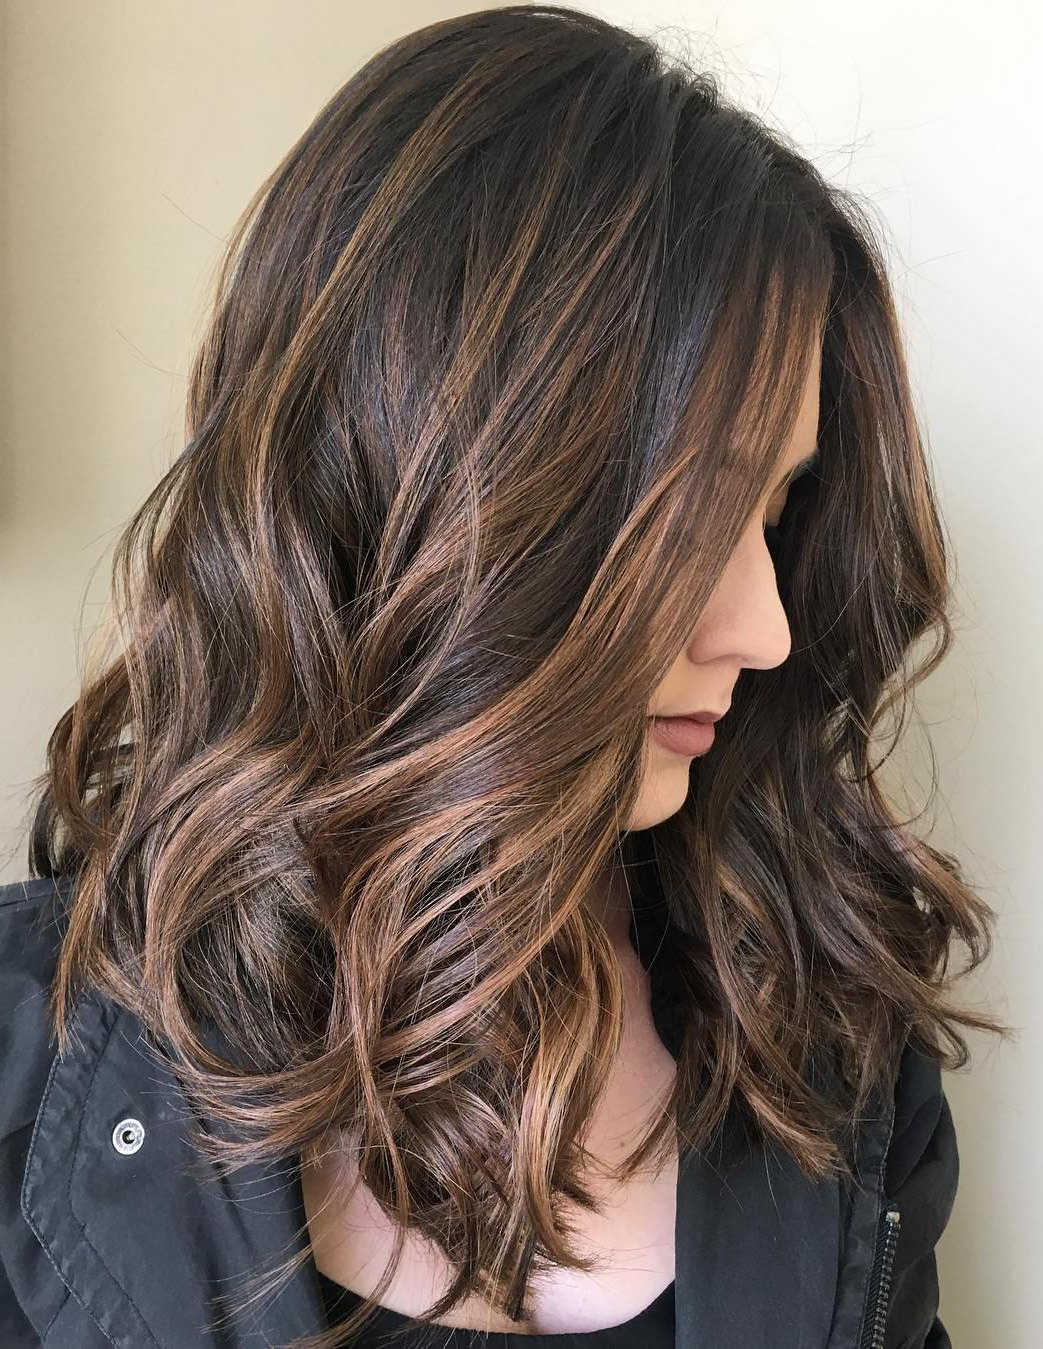 Recent Long Thick Black Hairstyles With Light Brown Balayage Inside 70 Balayage Hair Color Ideas With Blonde, Brown And Caramel Highlights (Gallery 9 of 20)